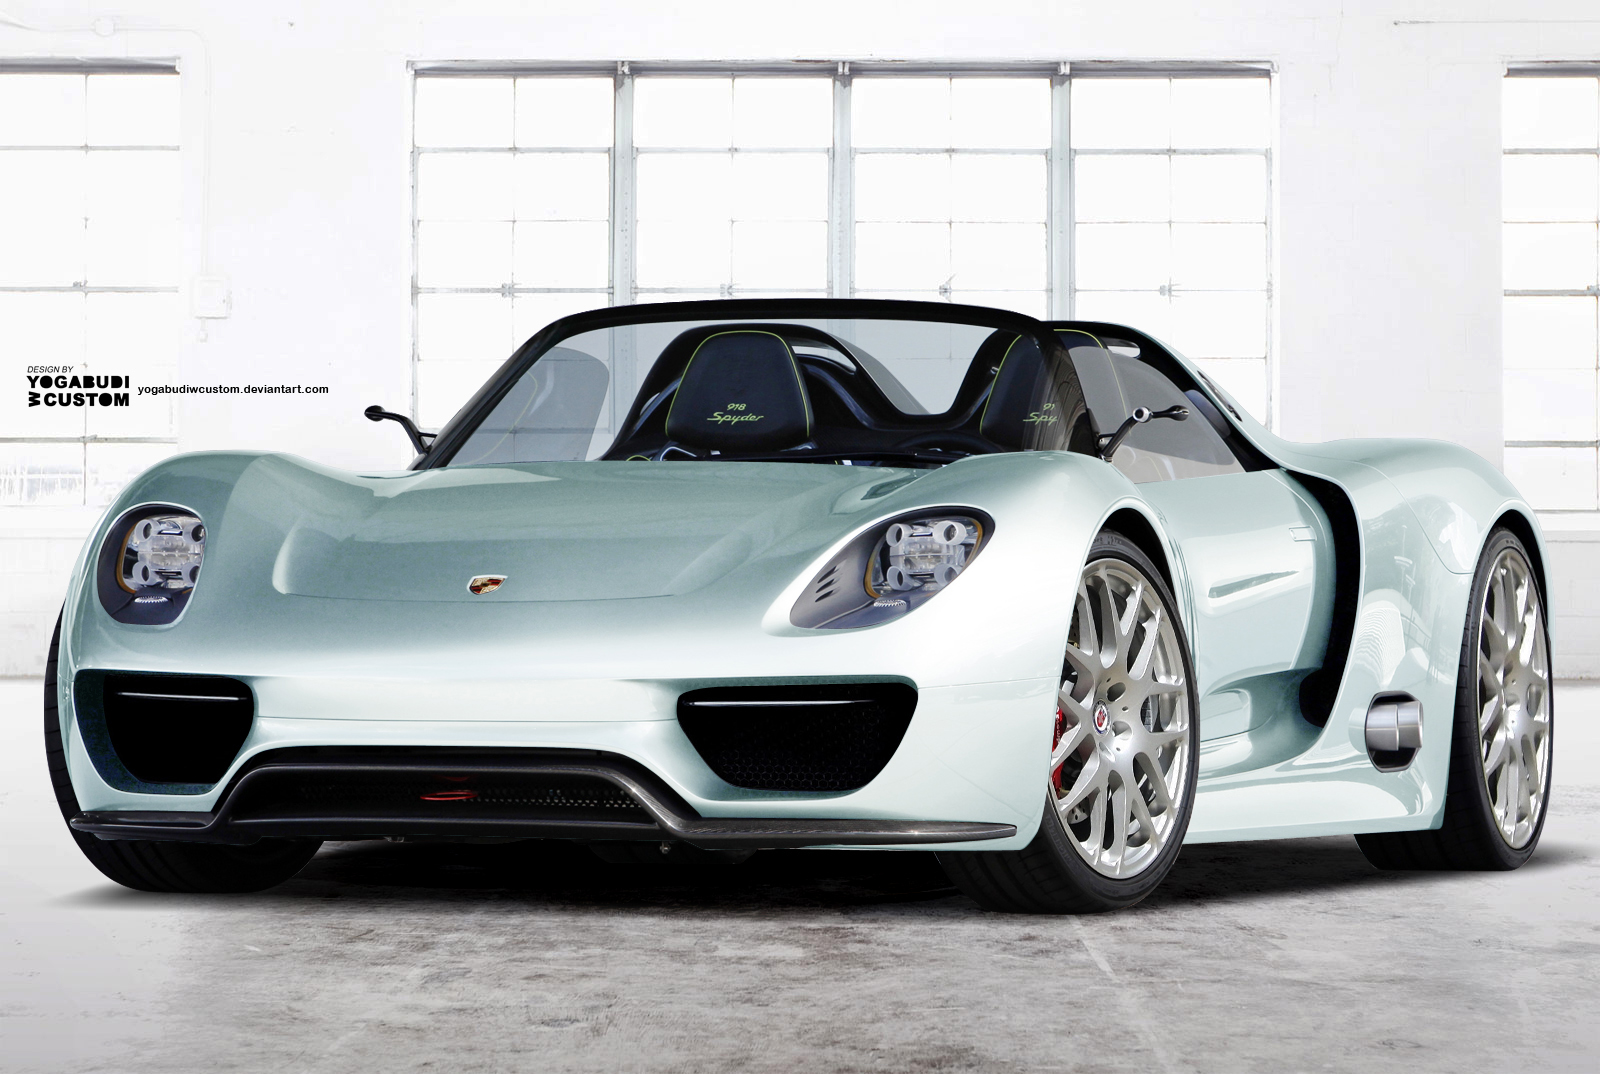 porsche 918 spyder concept white white finished porsche 918 spyder is for sale porsche 918. Black Bedroom Furniture Sets. Home Design Ideas